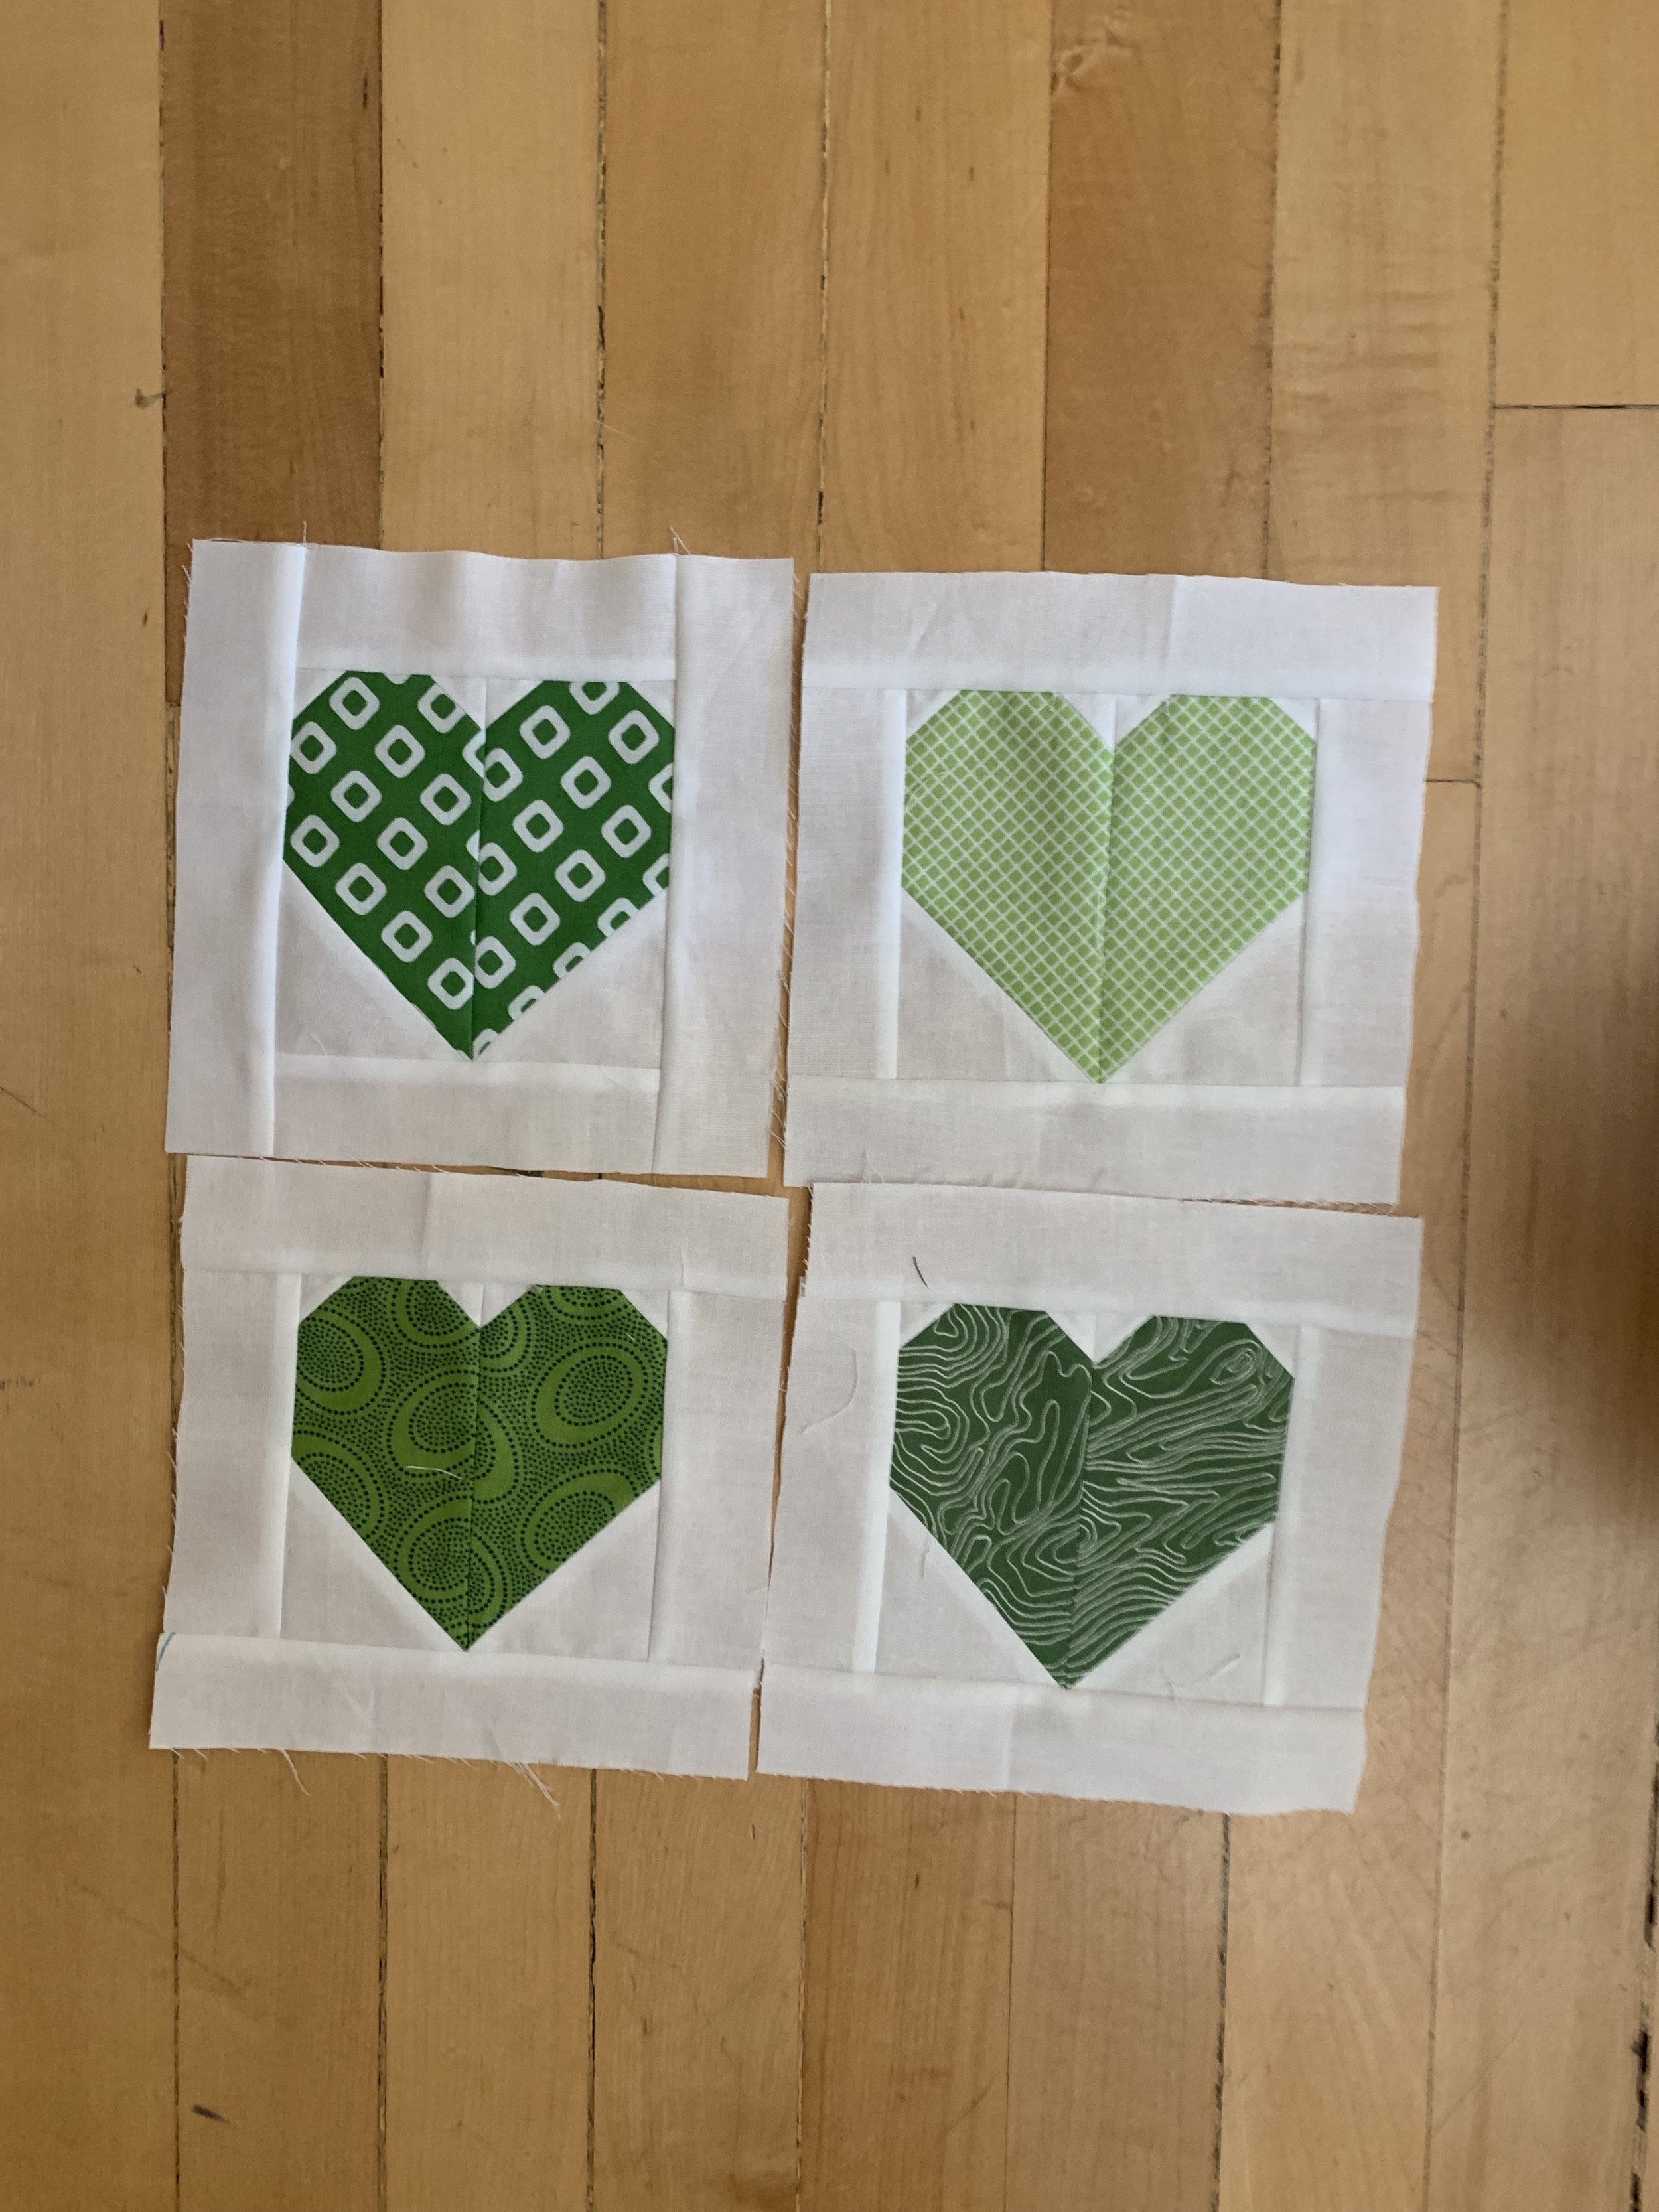 Healing hearts in green and white